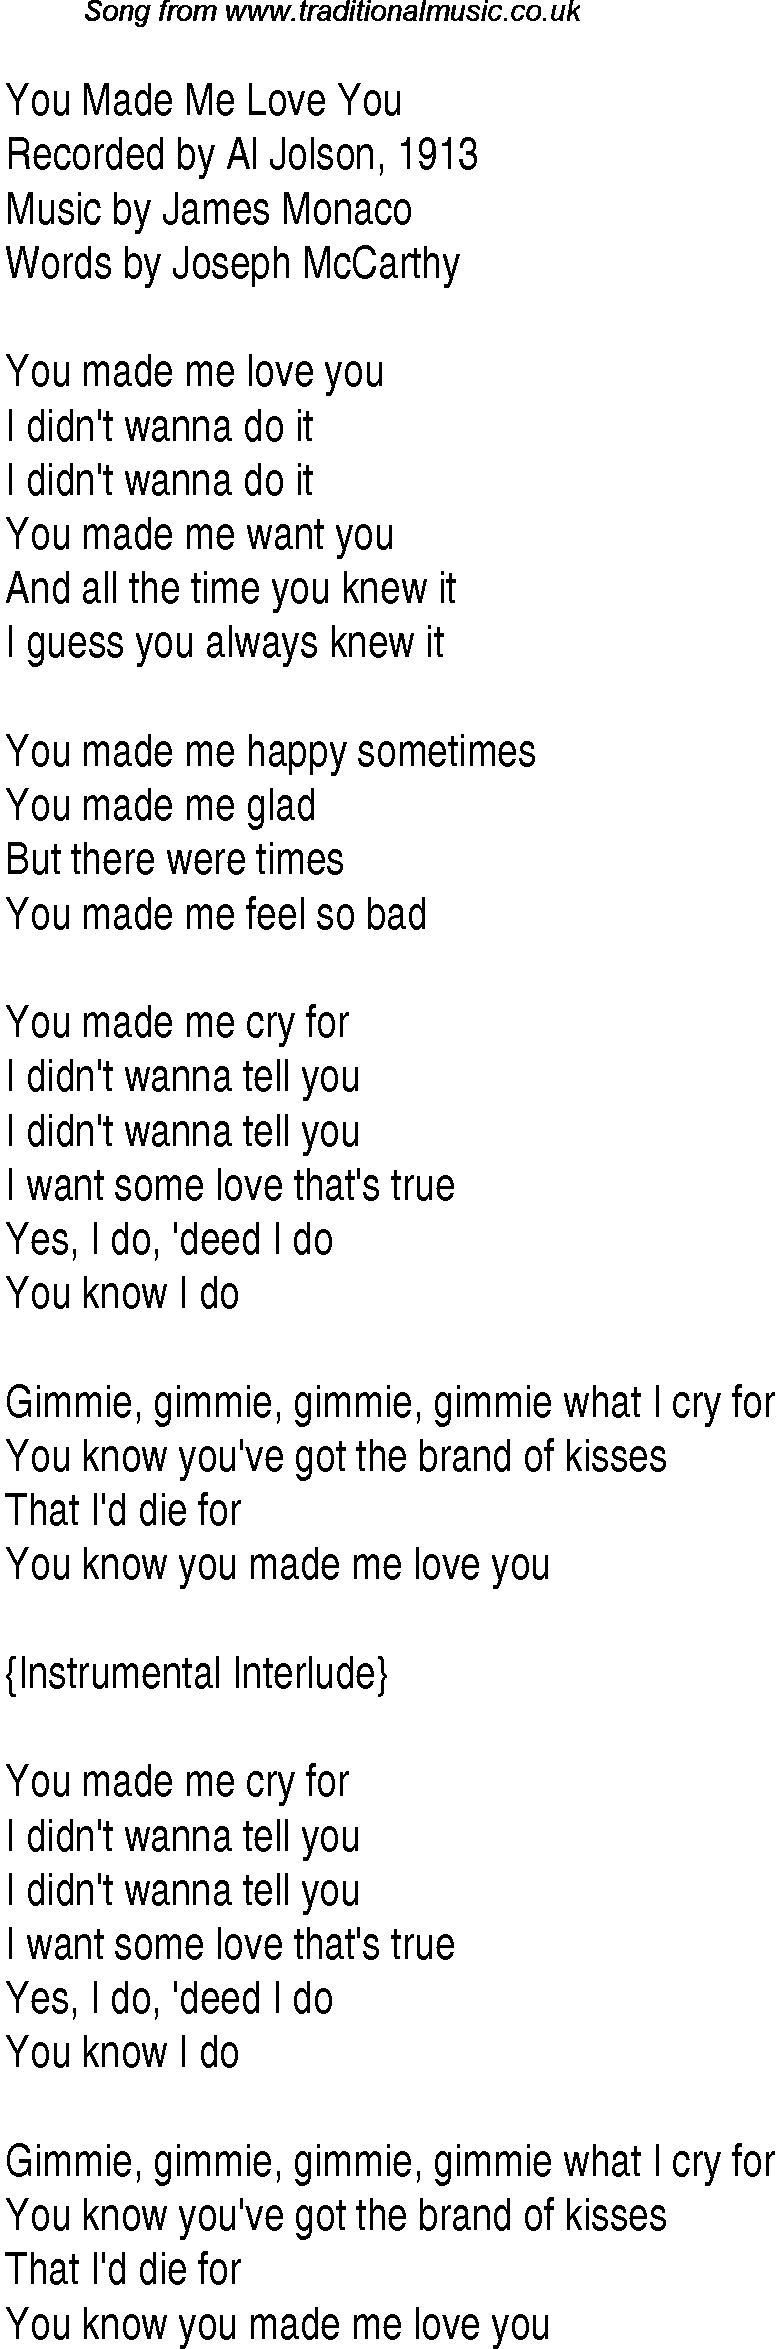 teach me how to love you lyrics